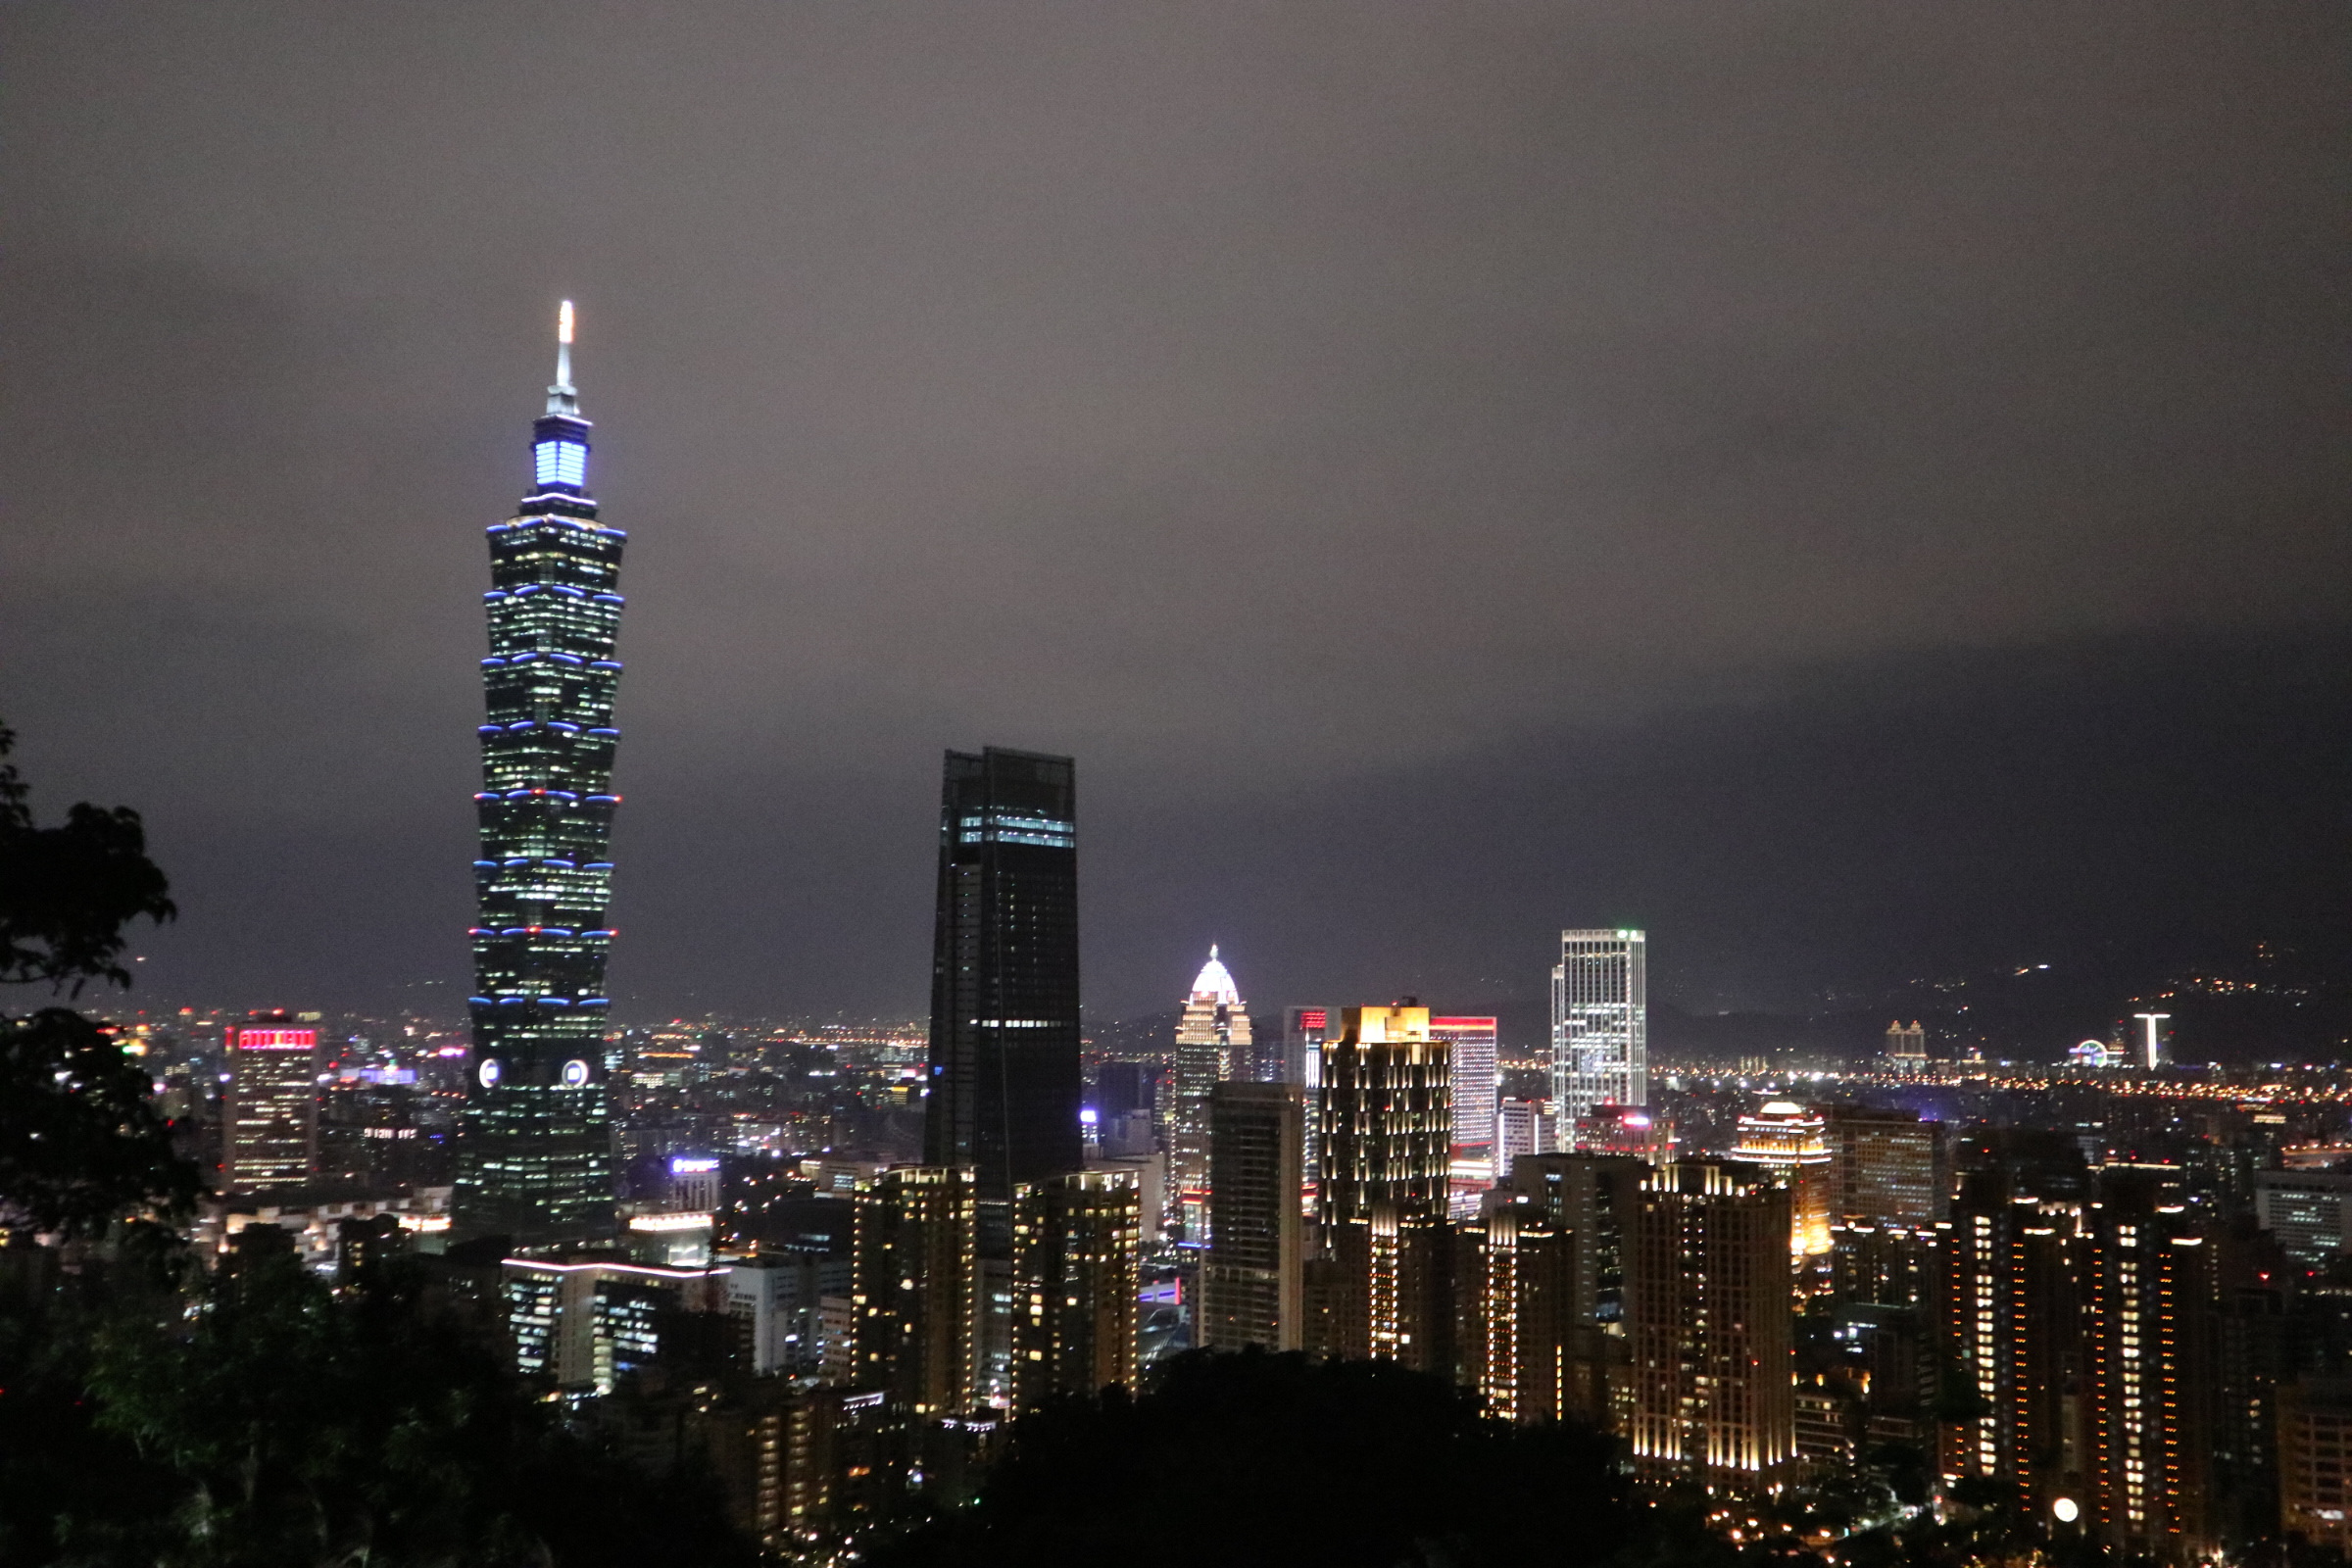 Taipei skyline at night!